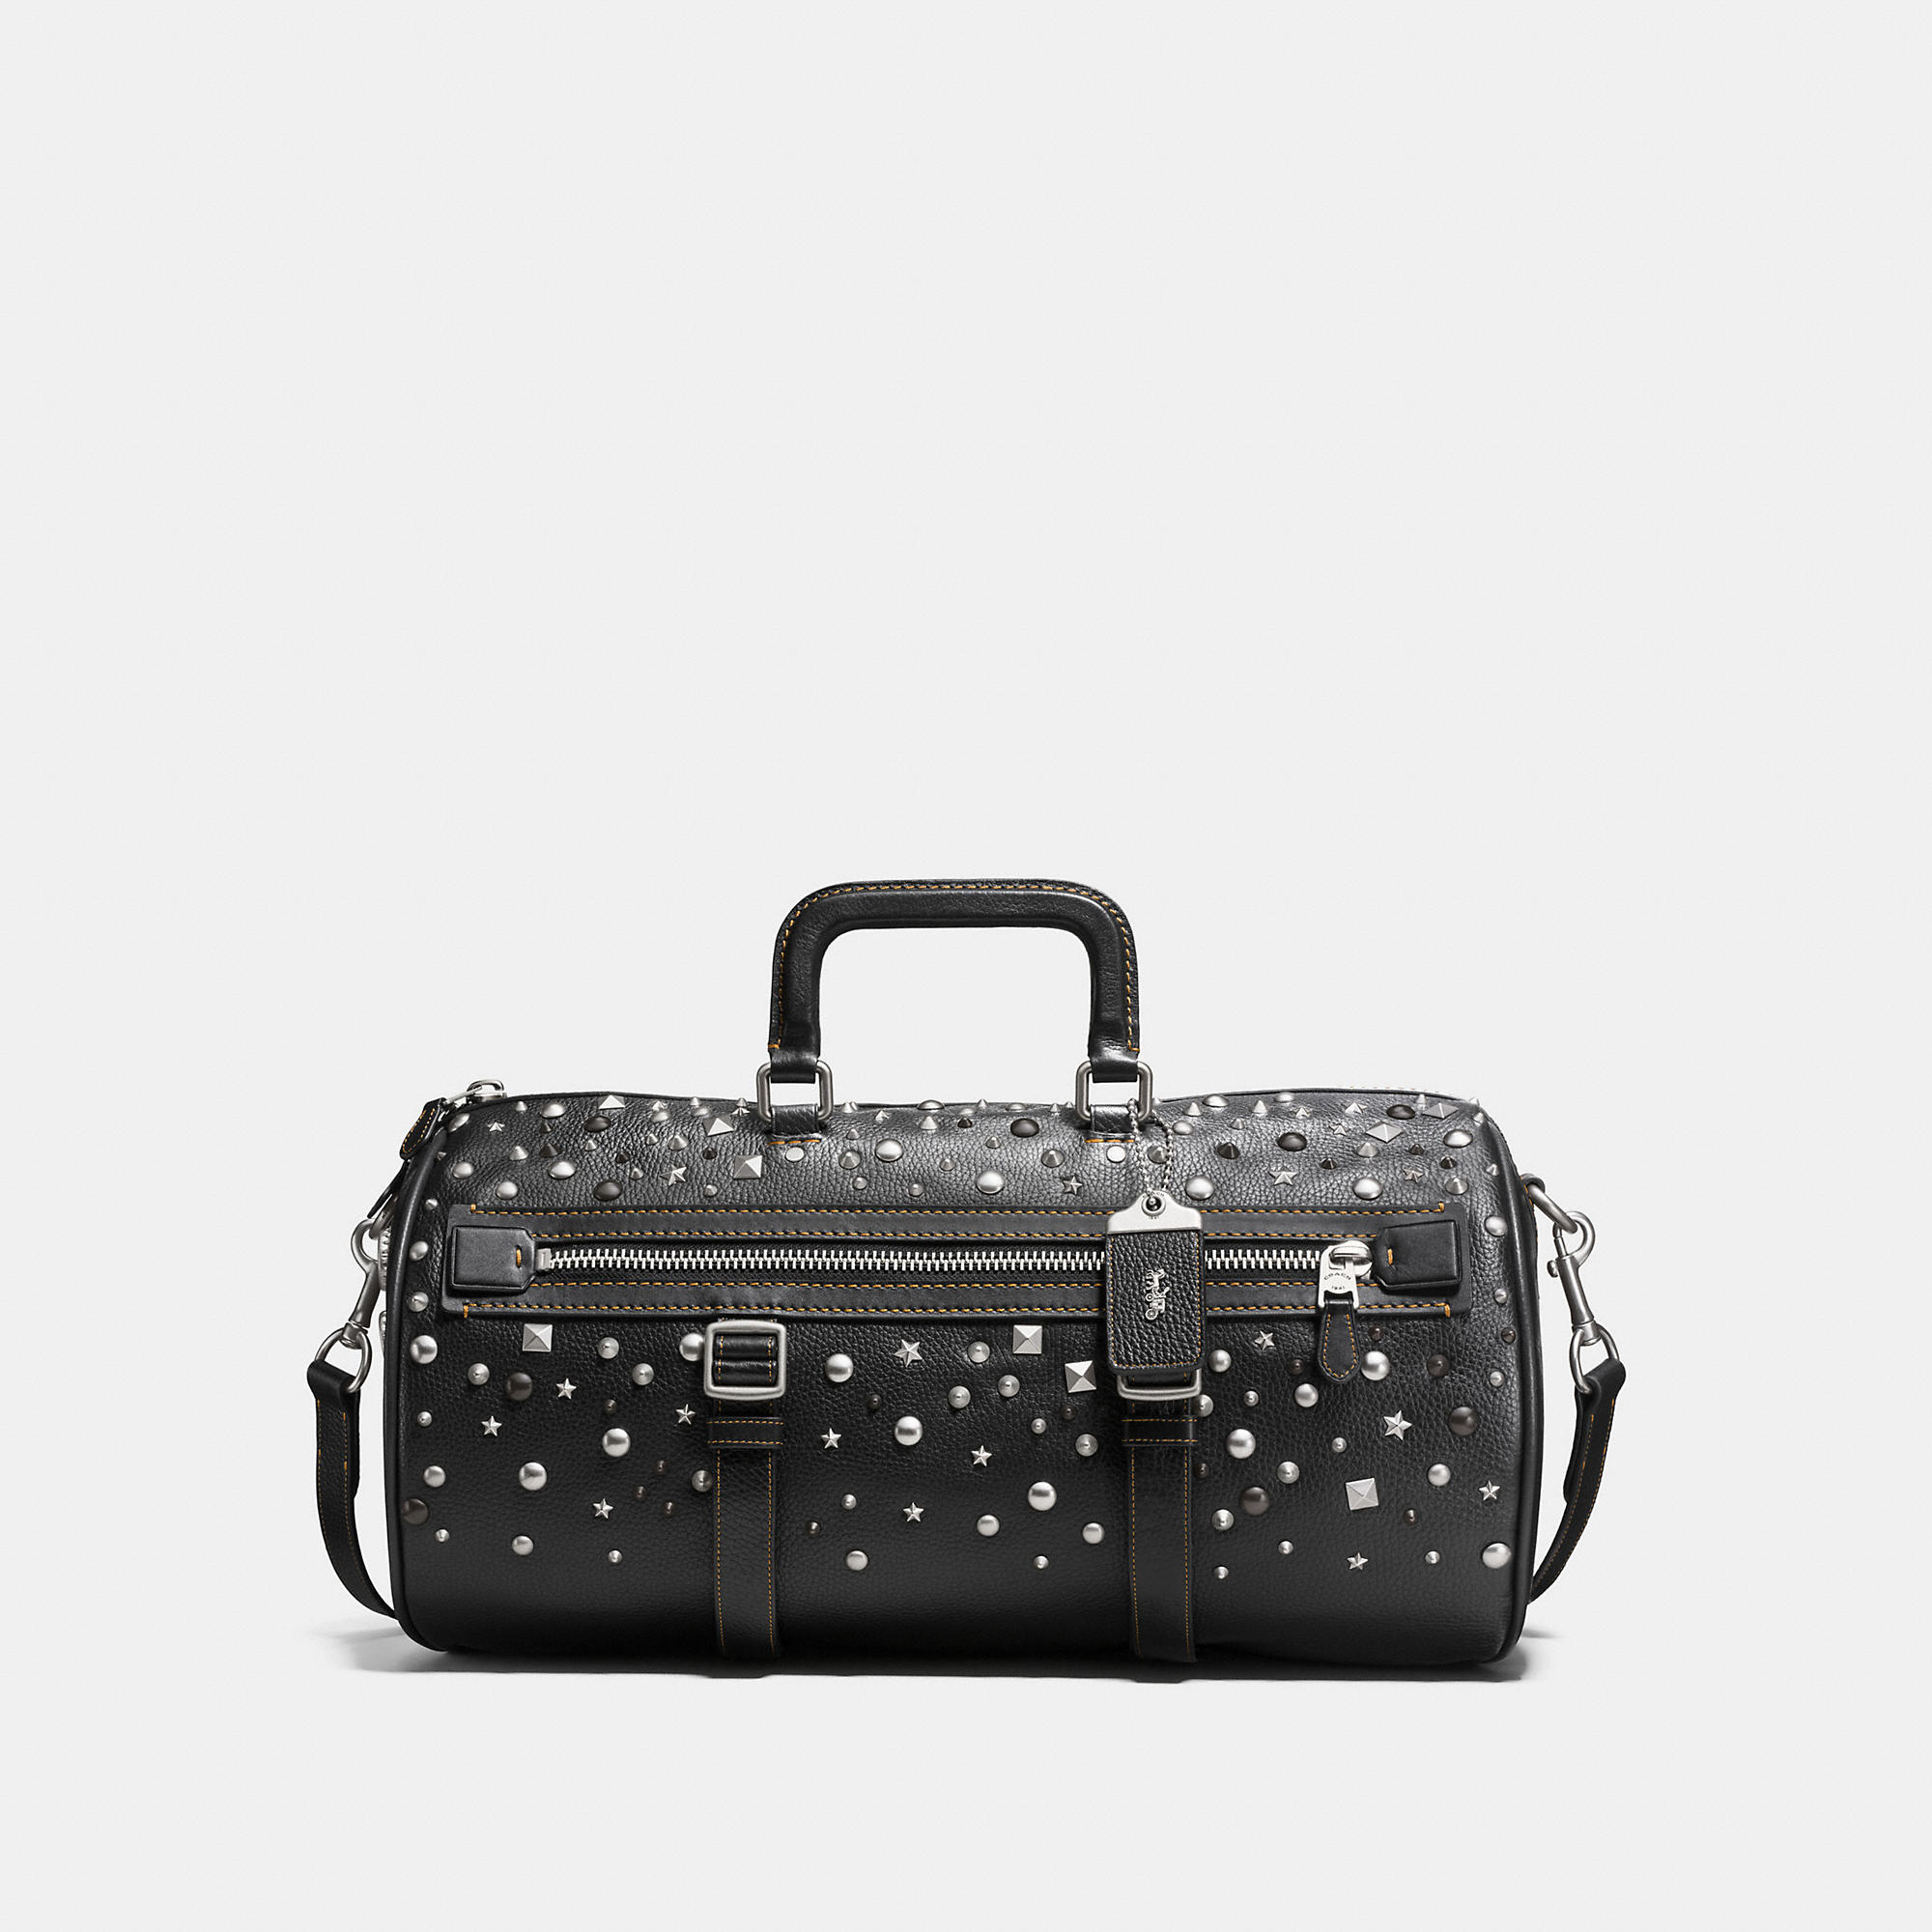 Coach Flag Gym Bag In Pebble Leather With Studs